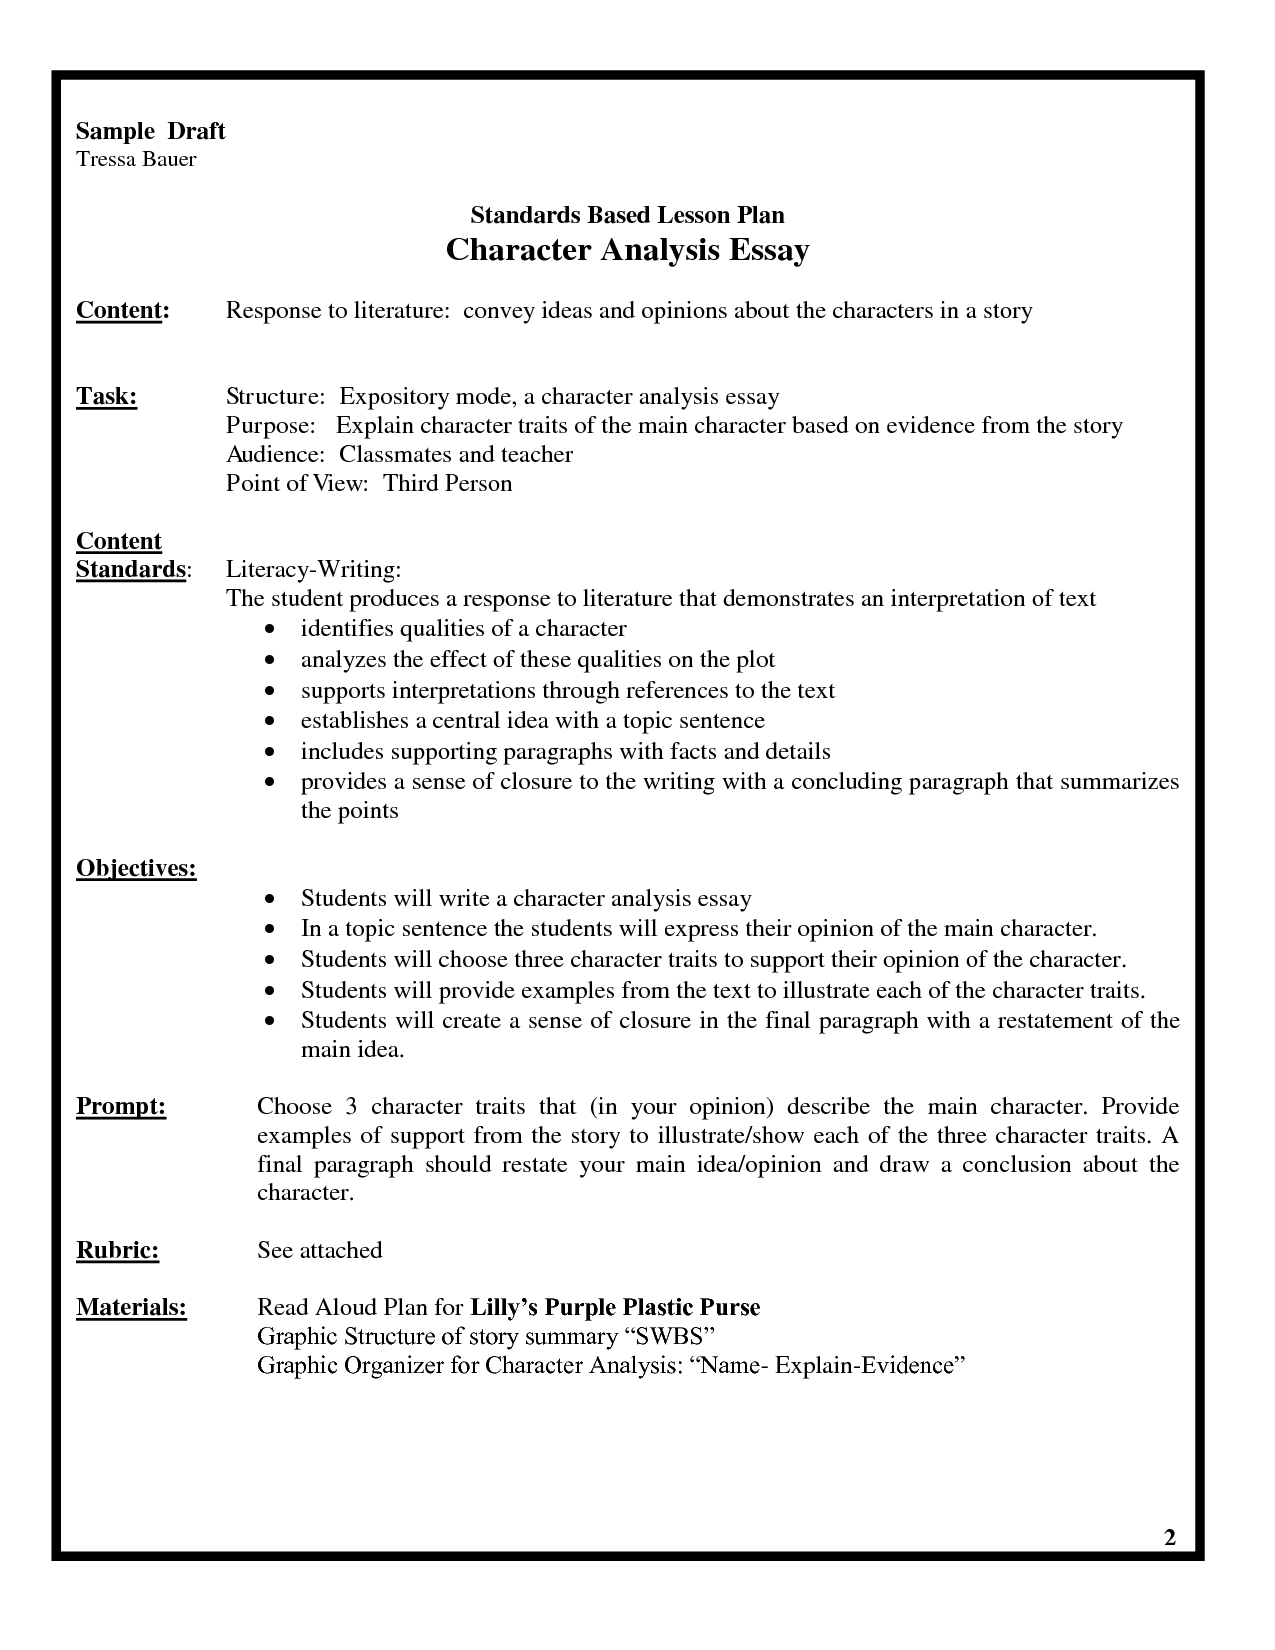 essay five lesson paragraph plan The central idea of their piece 11 model how to turn the facts into cohesive sentences and paragraphs using transition words (such as 'for example', 'finally', etc), descriptive vocabulary, voice.